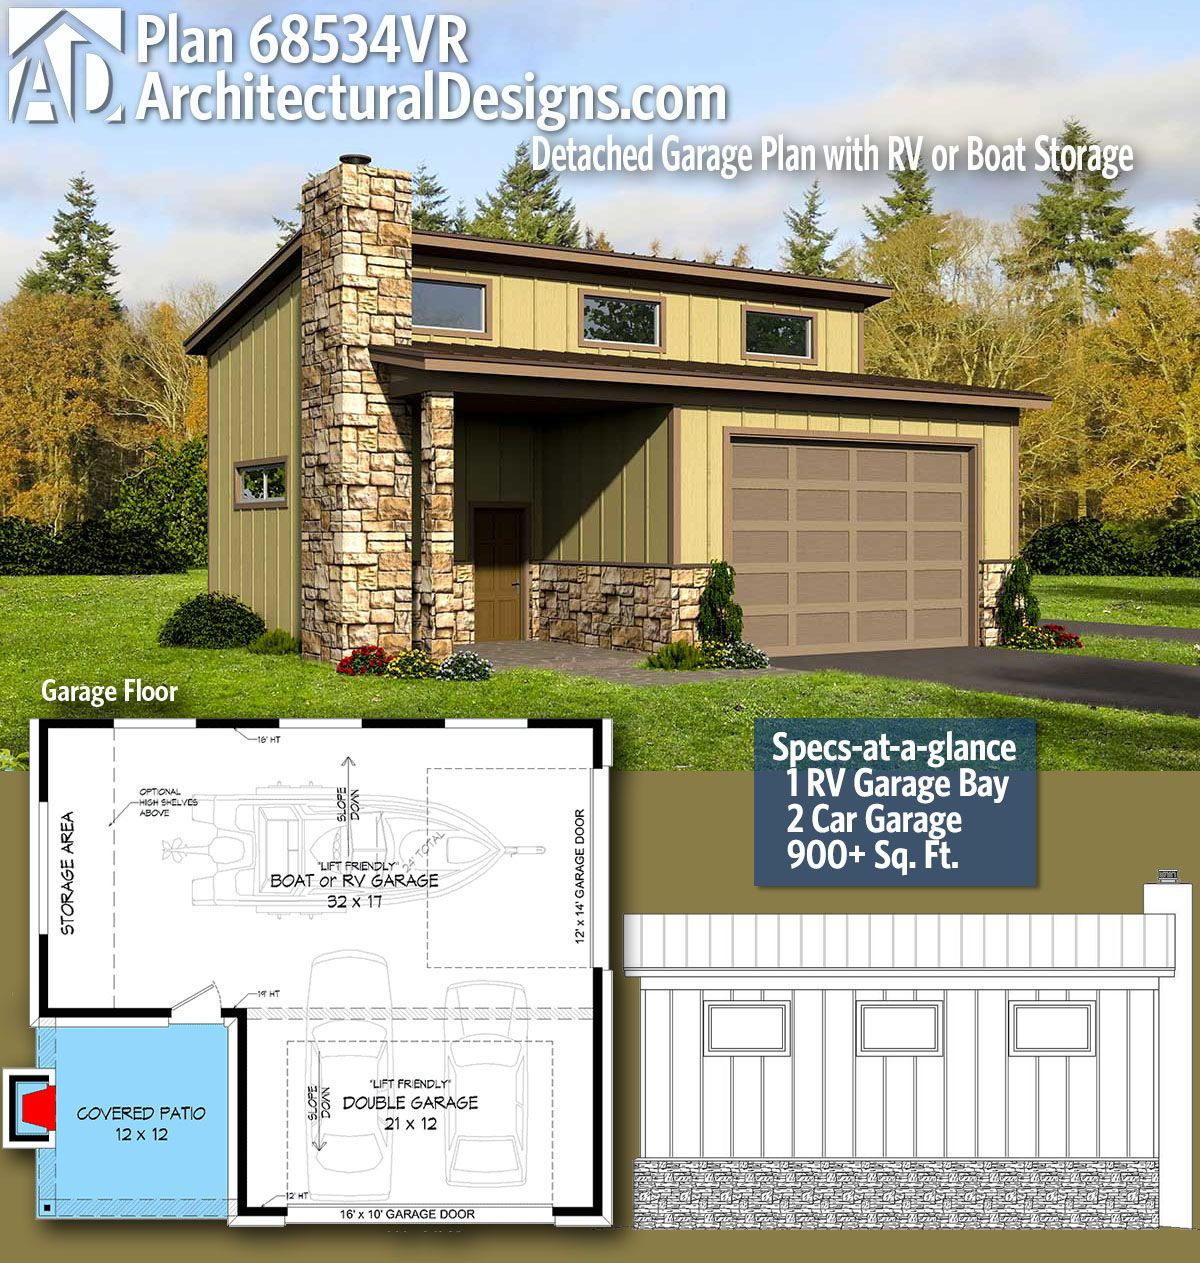 Plan 68534vr Detached Garage Plan With Rv Or Boat Storage Garage Plans Detached Garage Plan Carriage House Plans